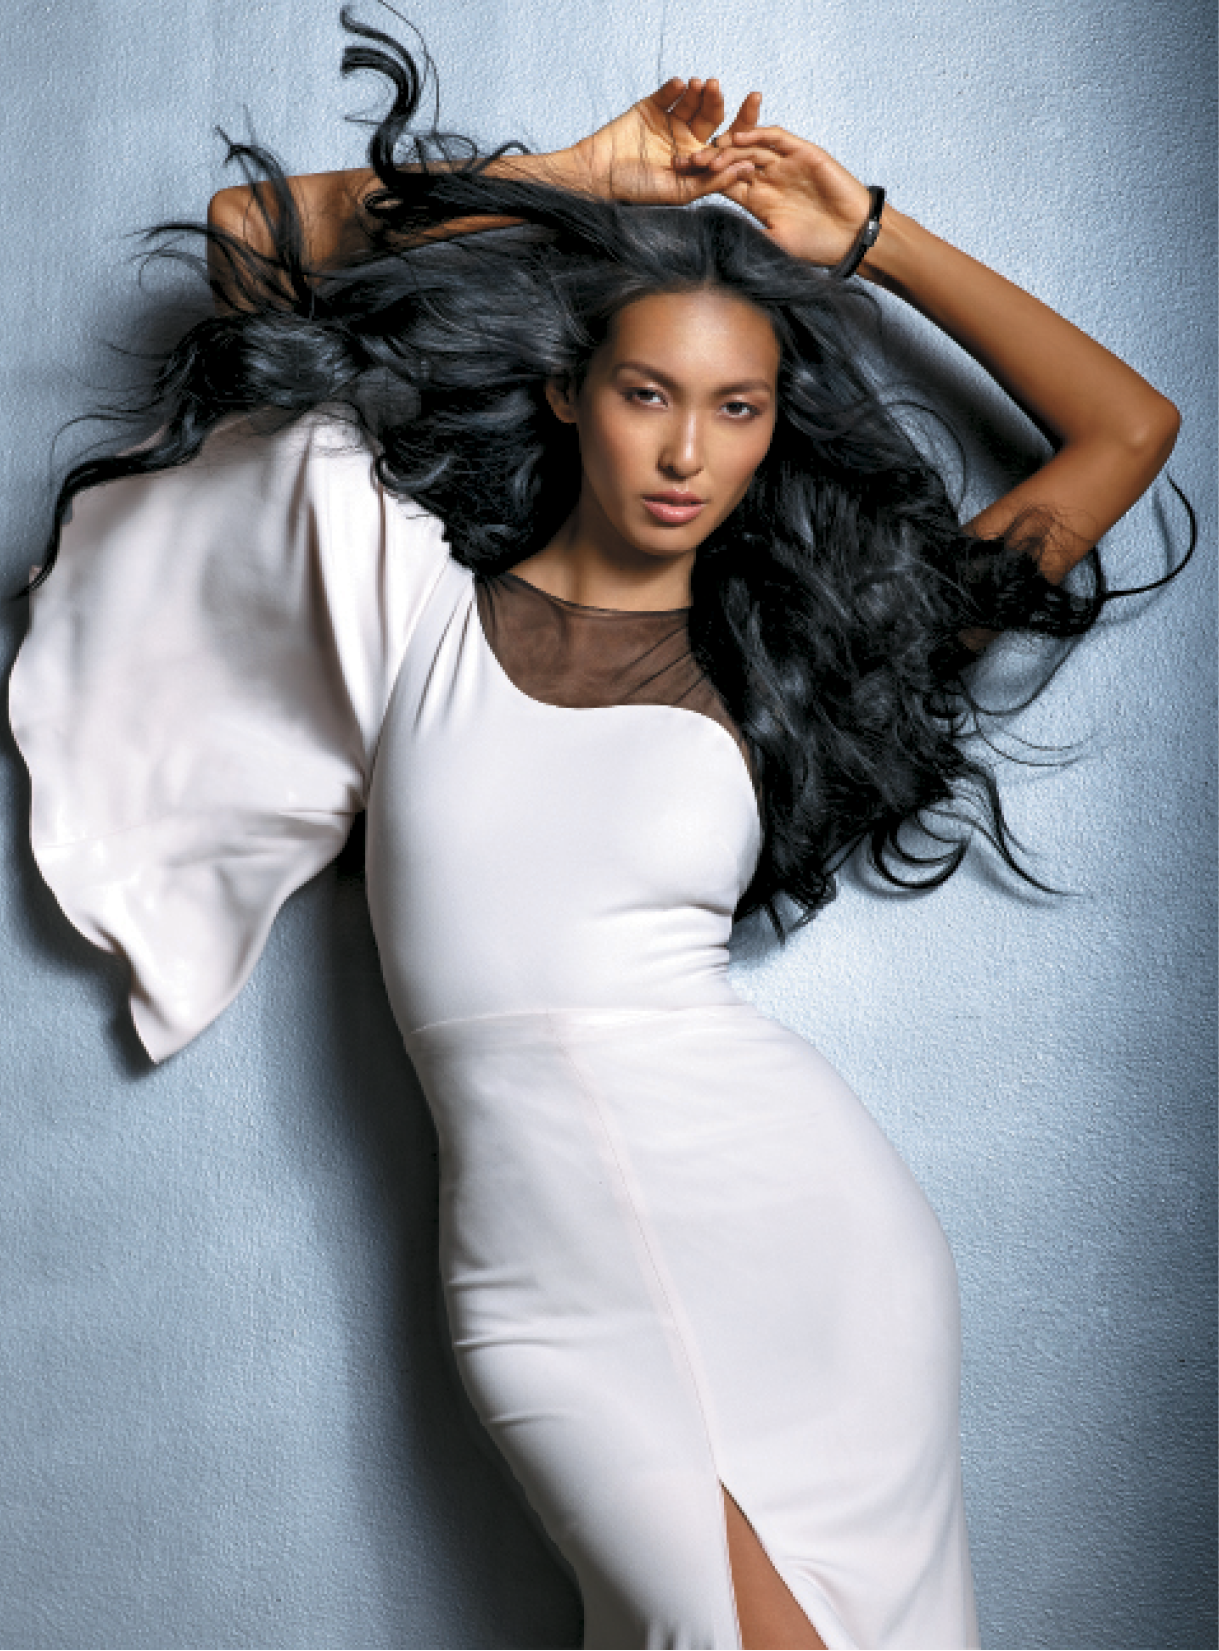 Giannandrea worked a bit of Blow Dry Lotion into strands before drying them for volume, then used a large curling iron and Control Spray to create waves. He used Whipped Detailing Cream to play up the style's smooth, rounded ends and to showcase the hair's health. Bracelet: M.C.L. by Matthew Campbell Laurenza; Dress: Maria Lucia Hohan